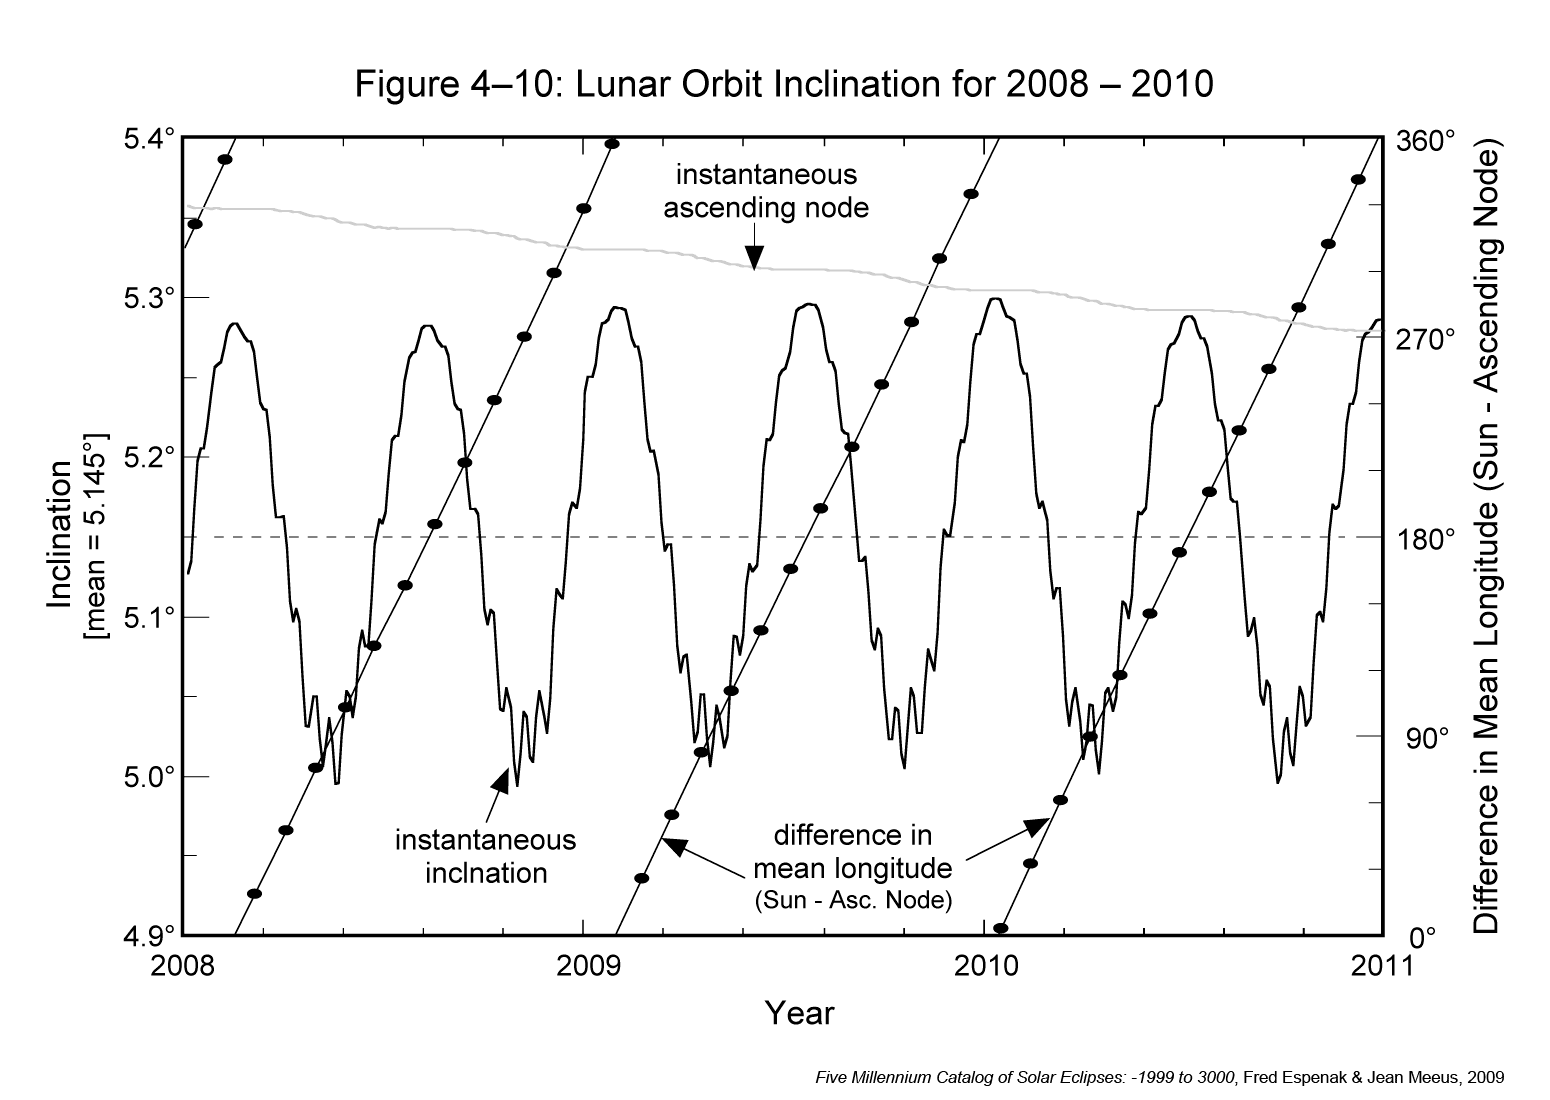 Lunar Orbital Inclination Changes